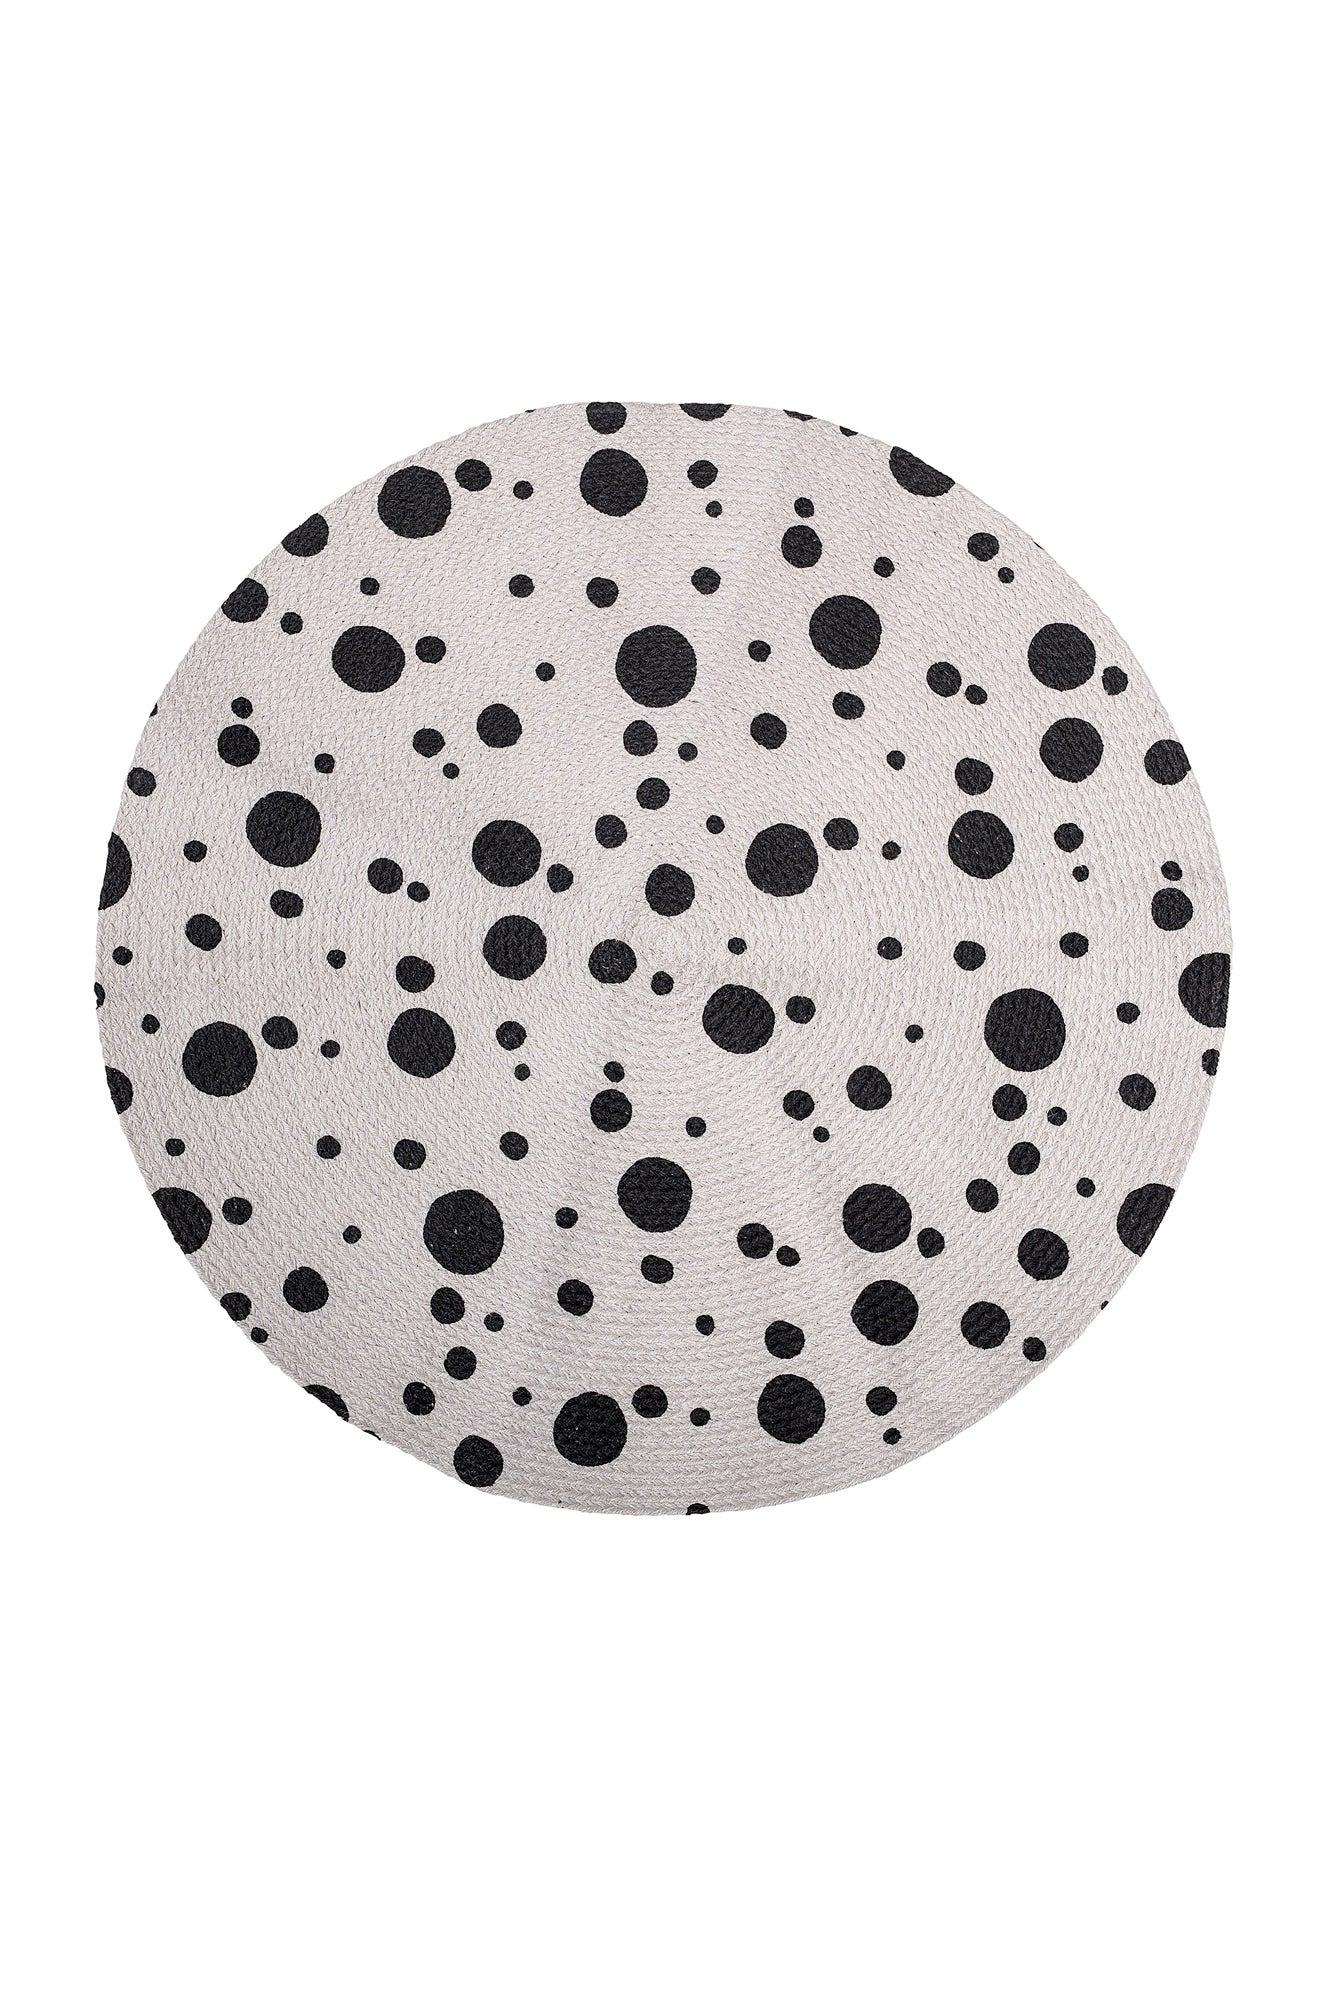 Black Dots Rug, Textile, Bloomingville - 3LittlePicks